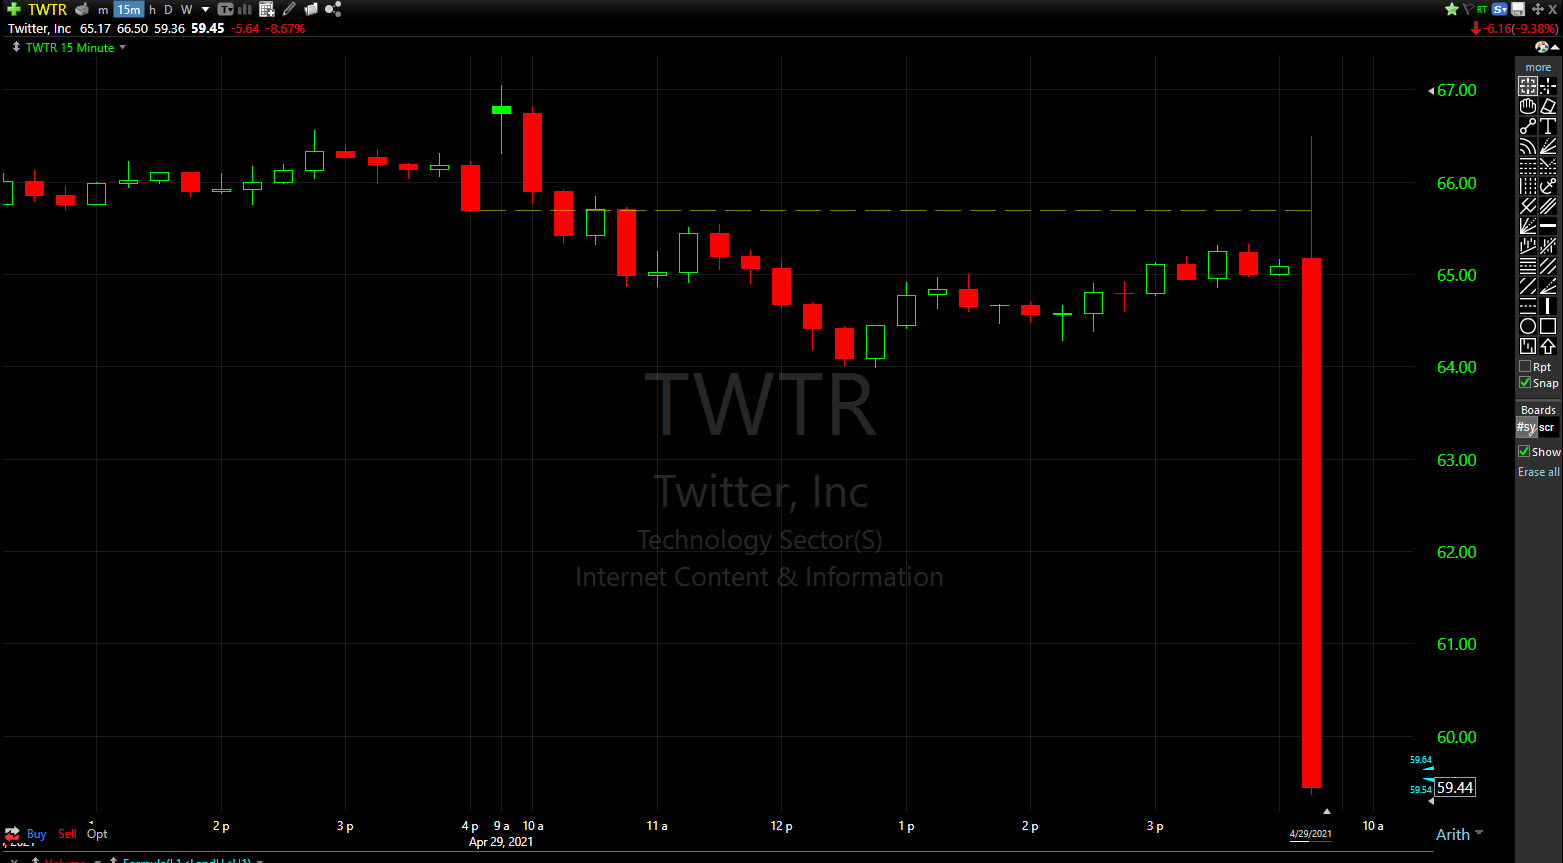 Twitter (TWTR) shares dropped 10% afterhours on the disappointing Q2 guidance and mDAU data.